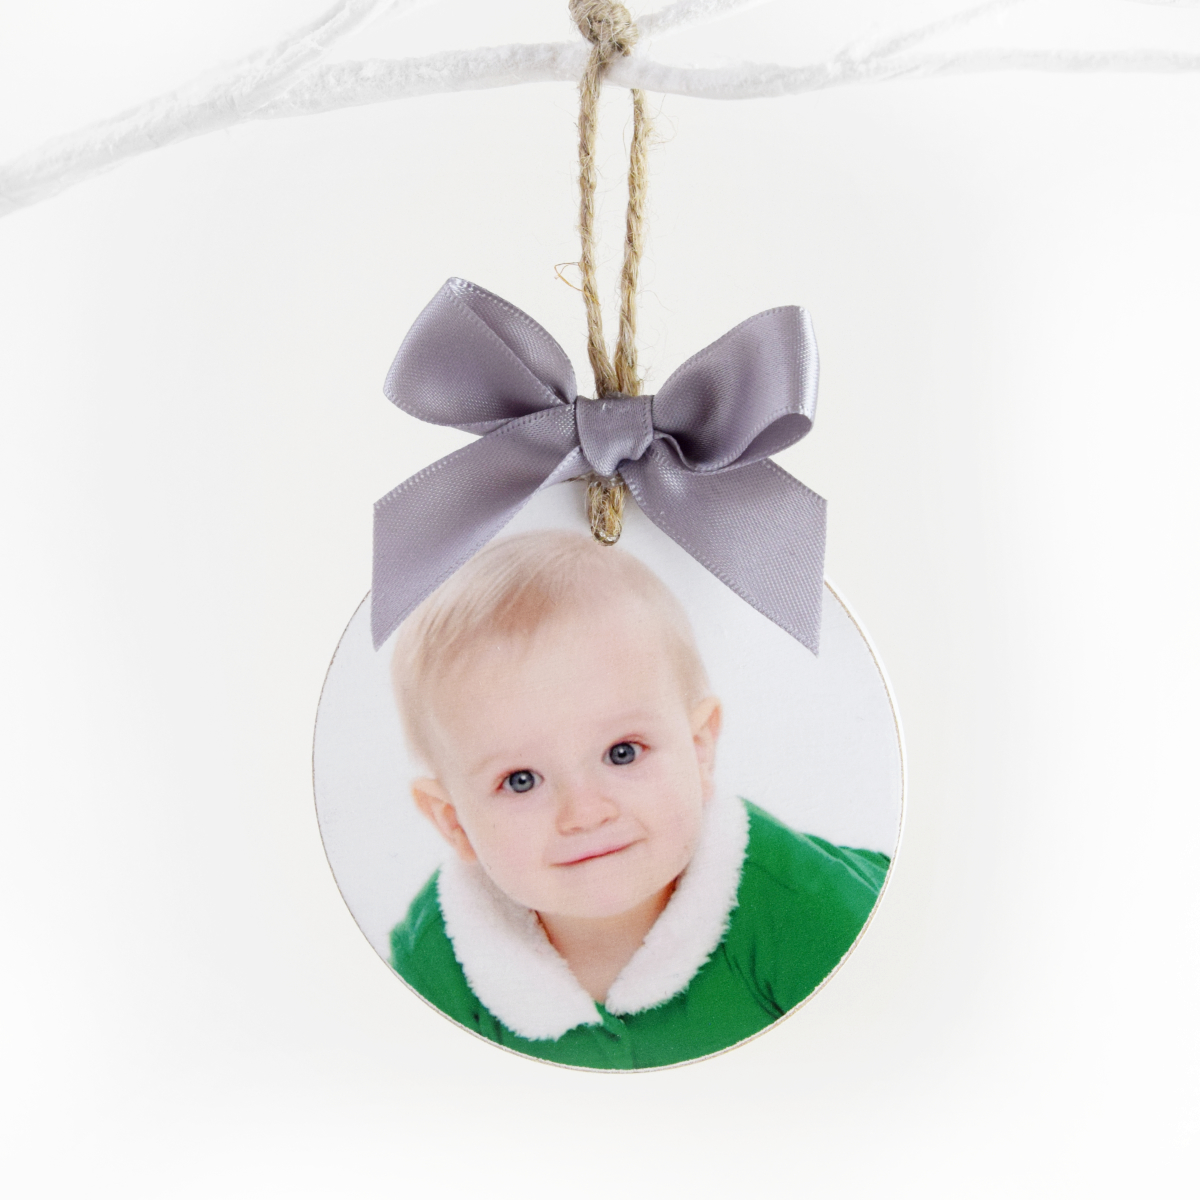 Personalised Wooden Photo Bauble Decoration